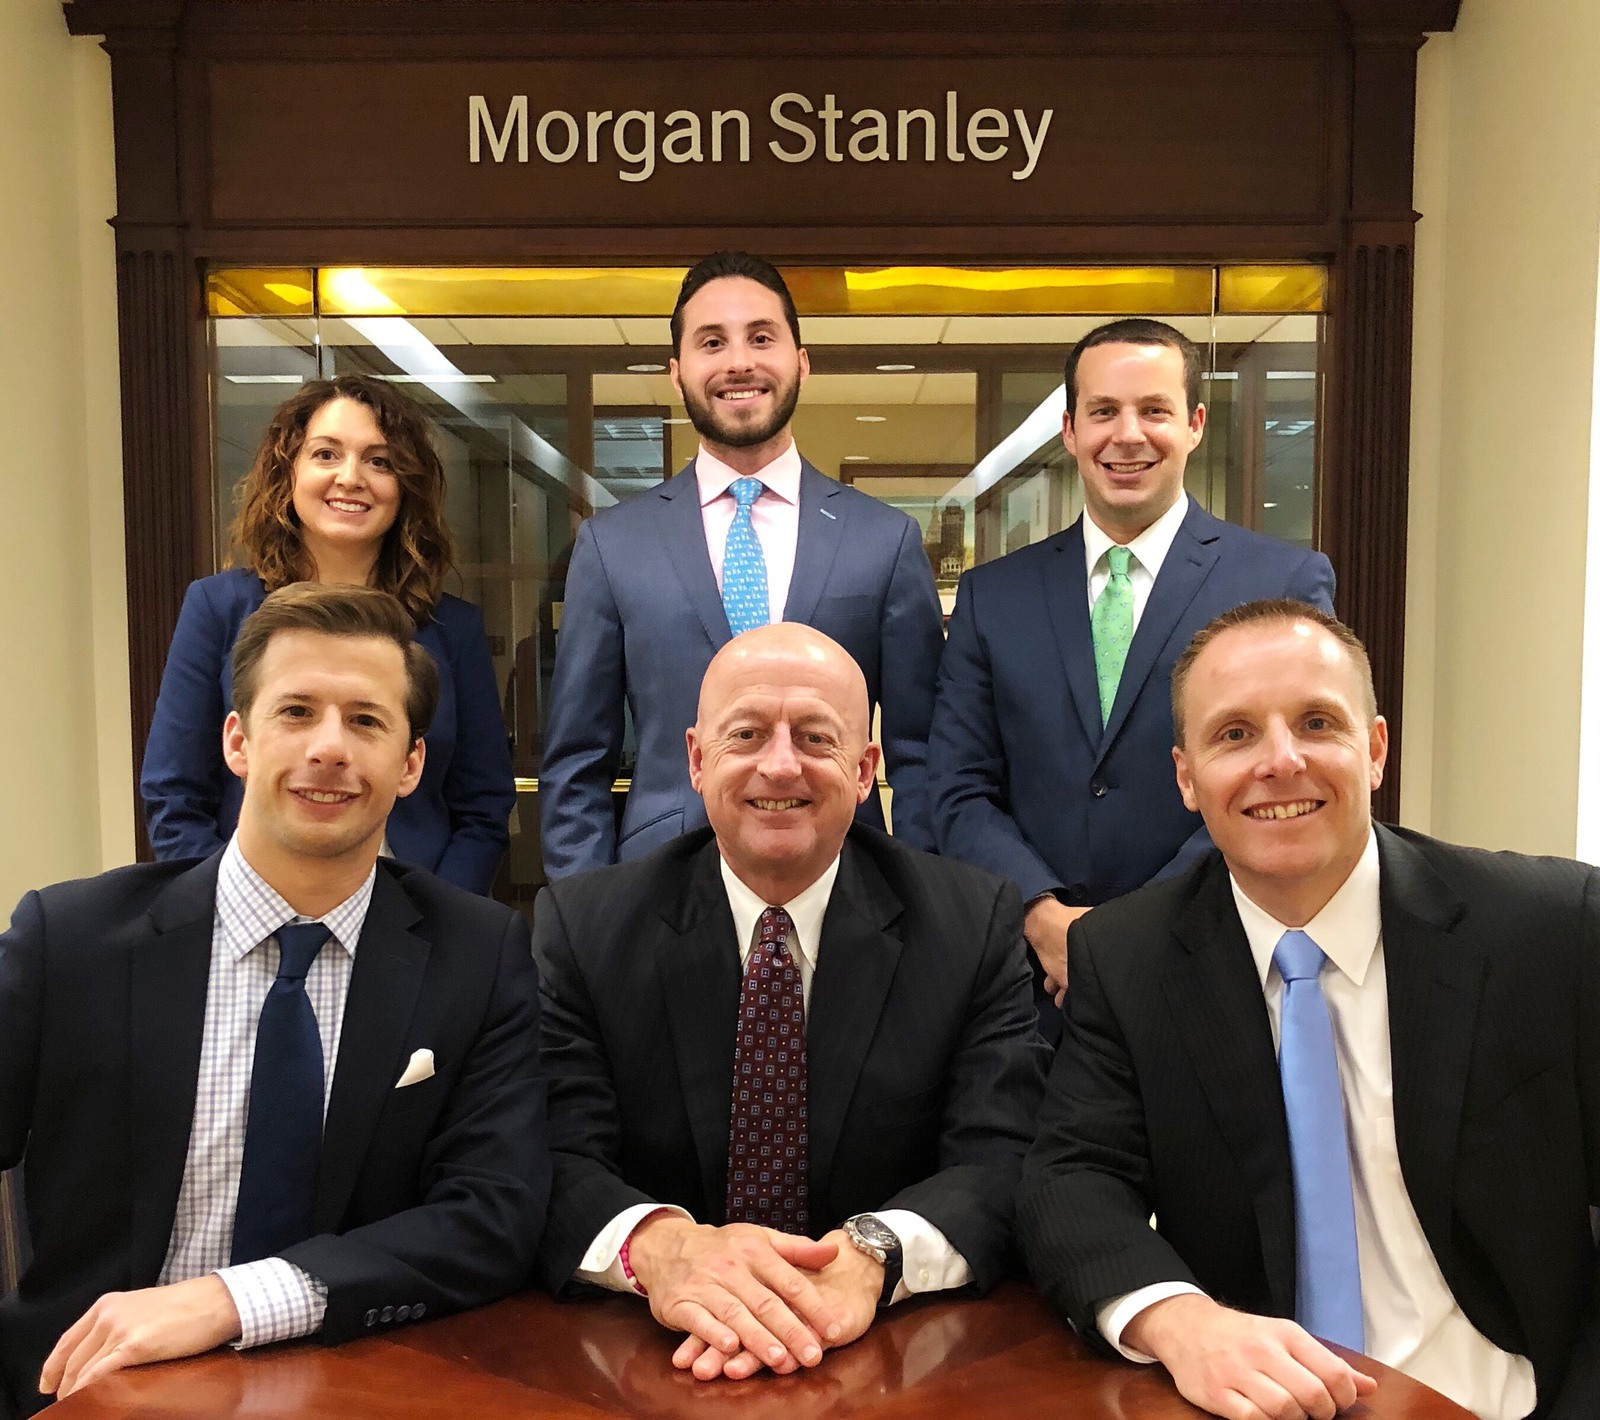 The BHR Group | Hartford, CT | Morgan Stanley Wealth Management